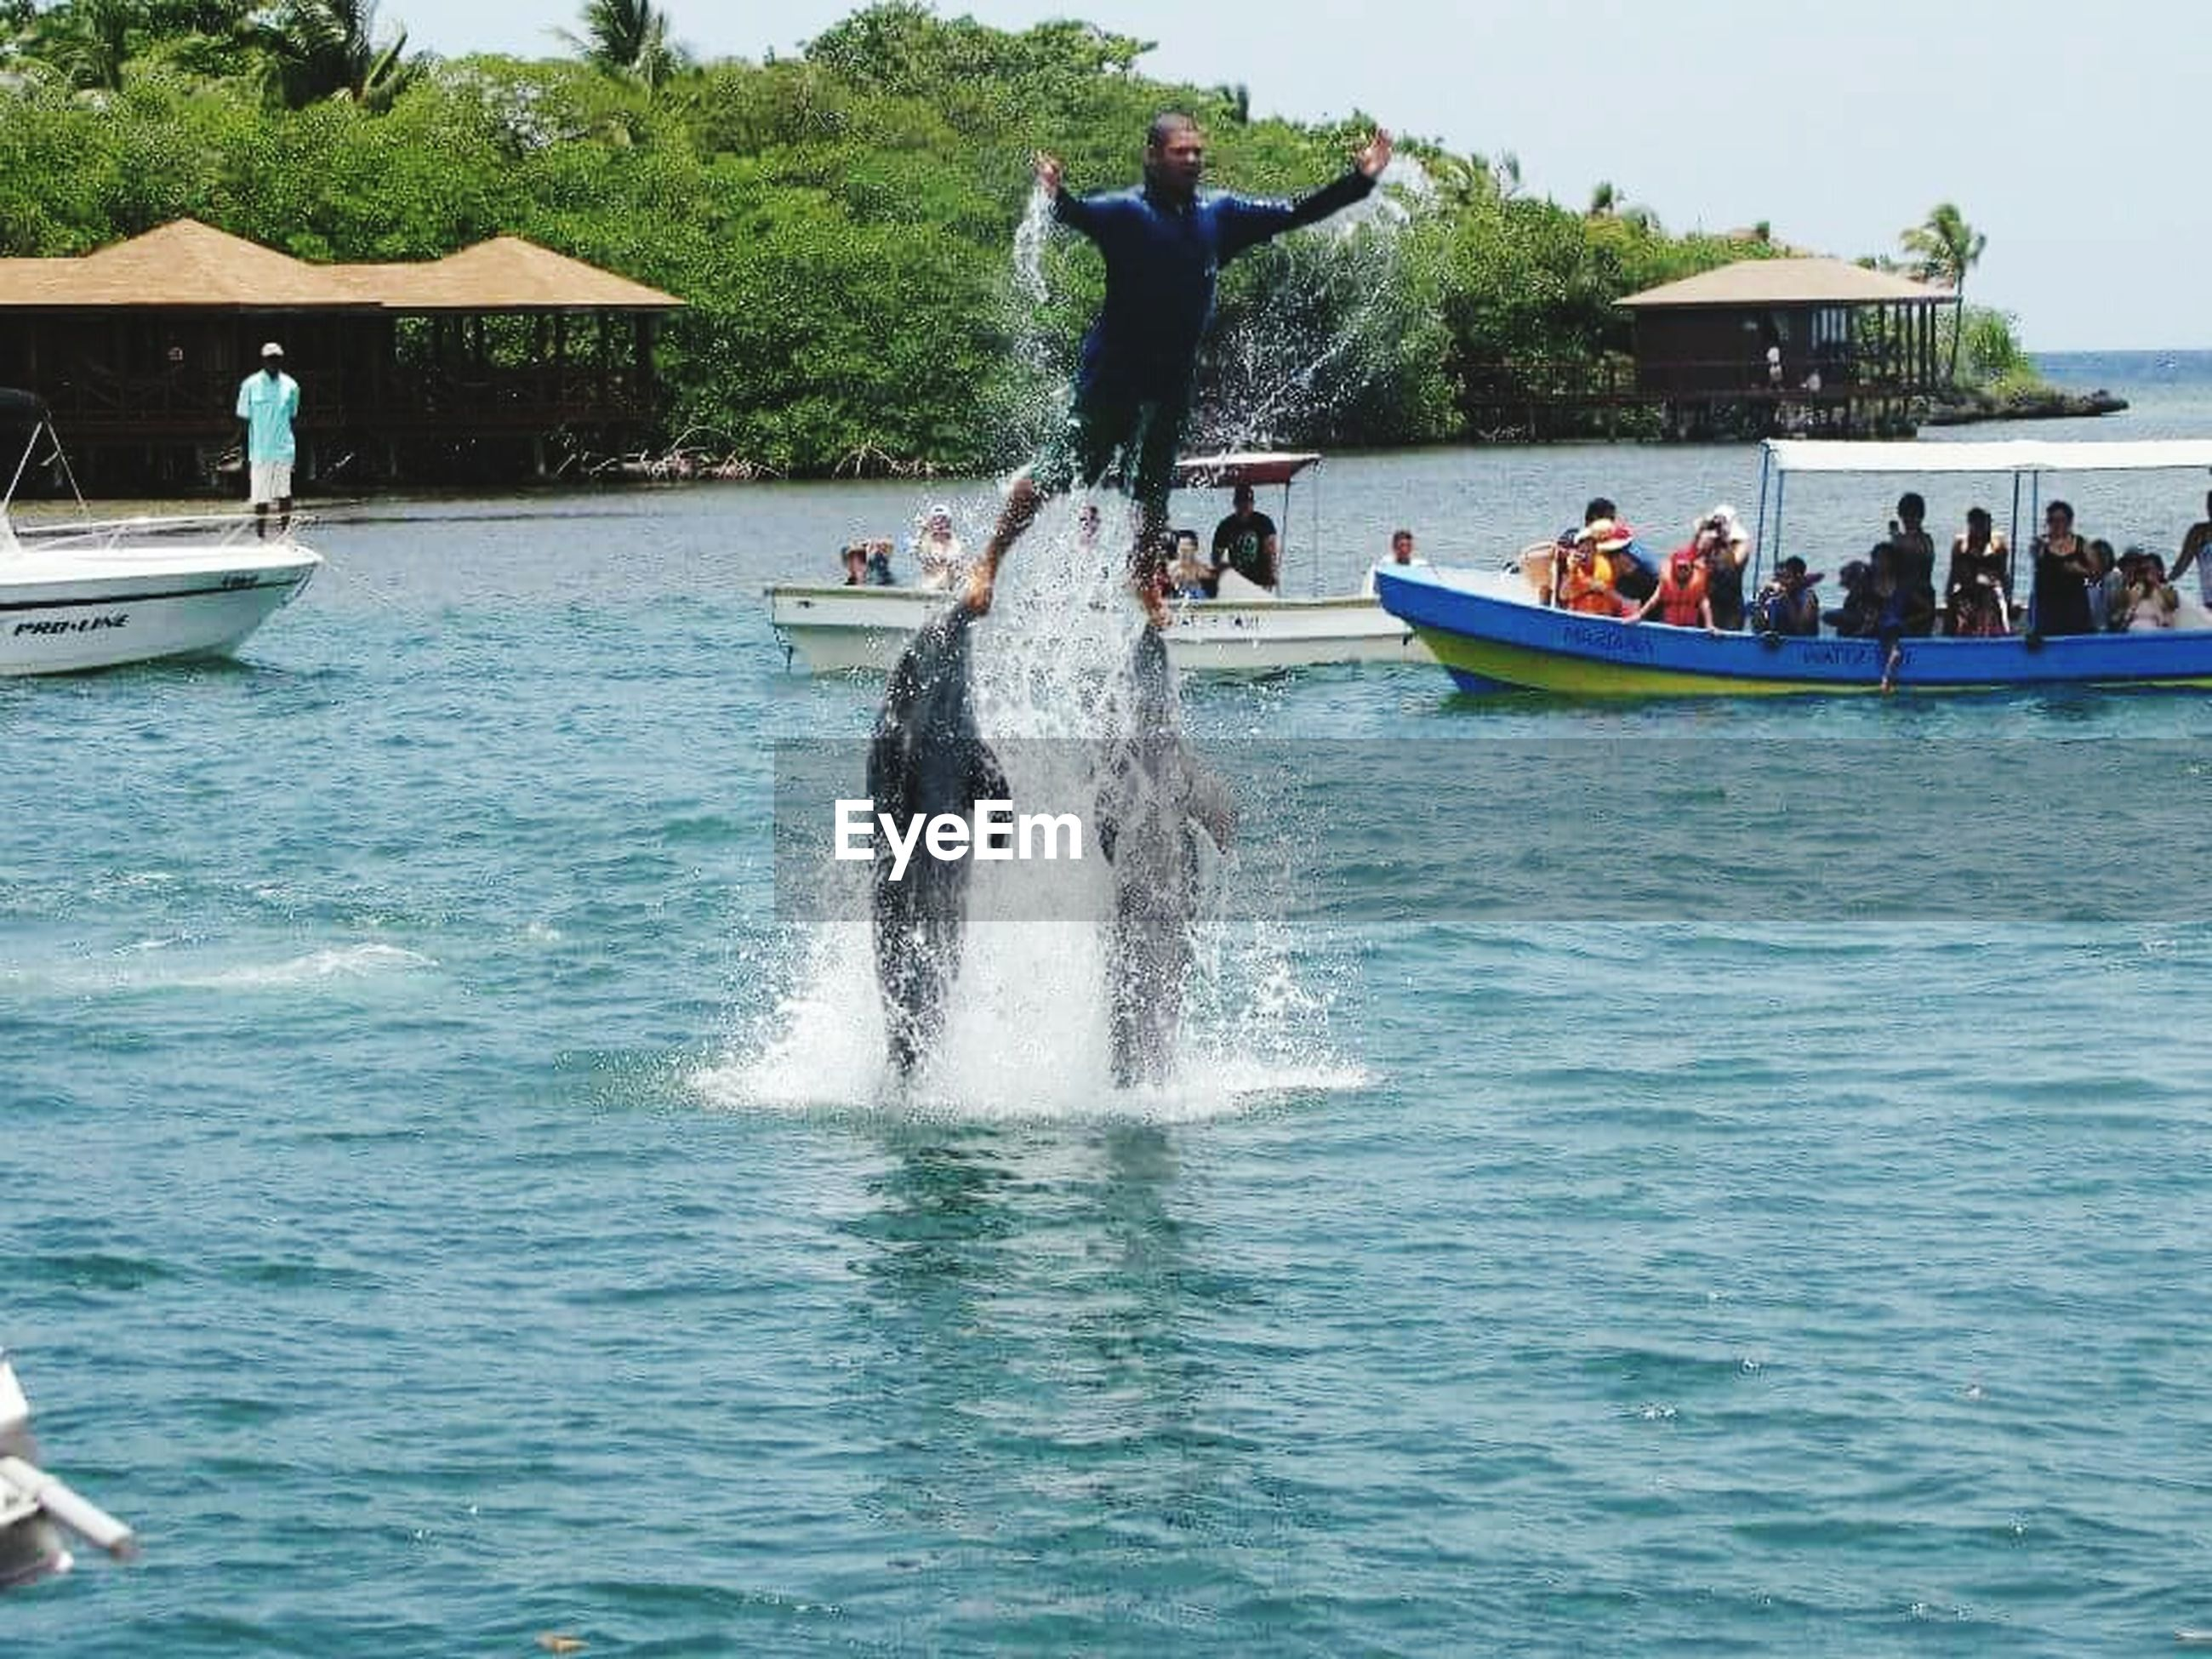 water, lifestyles, leisure activity, men, waterfront, sea, person, vacations, large group of people, nautical vessel, tourist, enjoyment, medium group of people, transportation, travel, tourism, motion, mode of transport, rippled